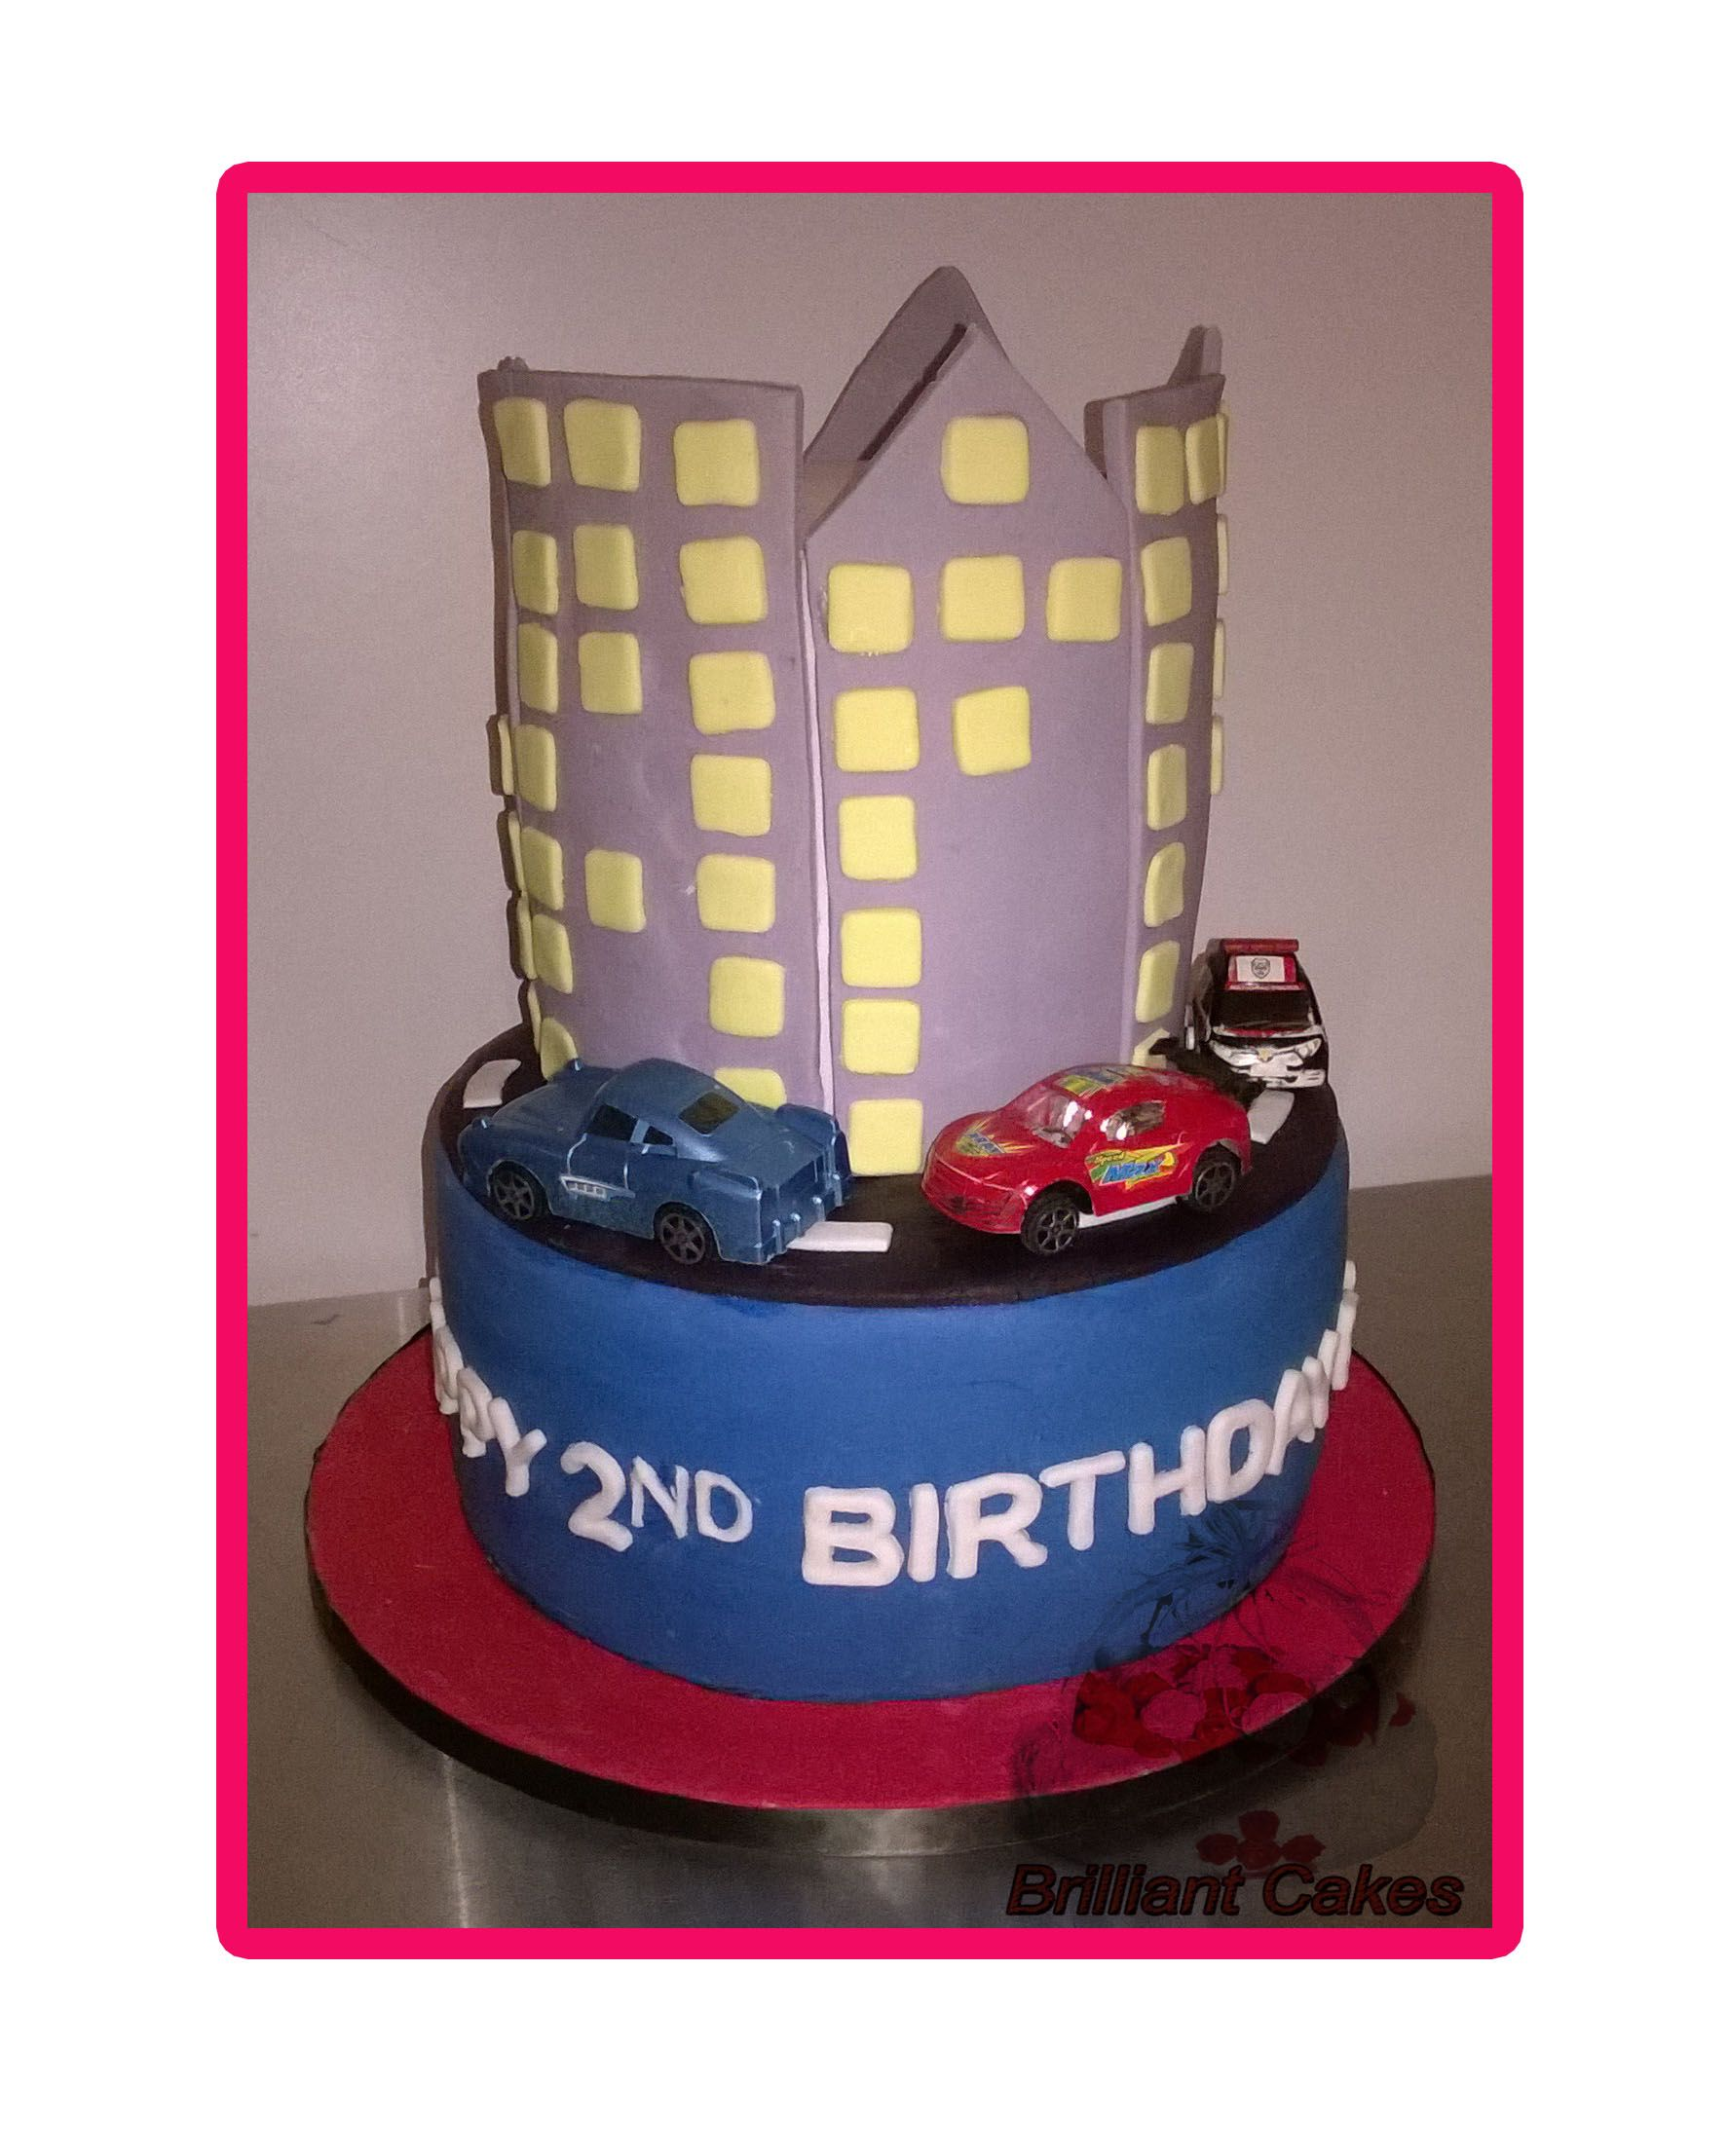 Wedding And Birthday Custom Made Cakes In Johannesburg South Africa